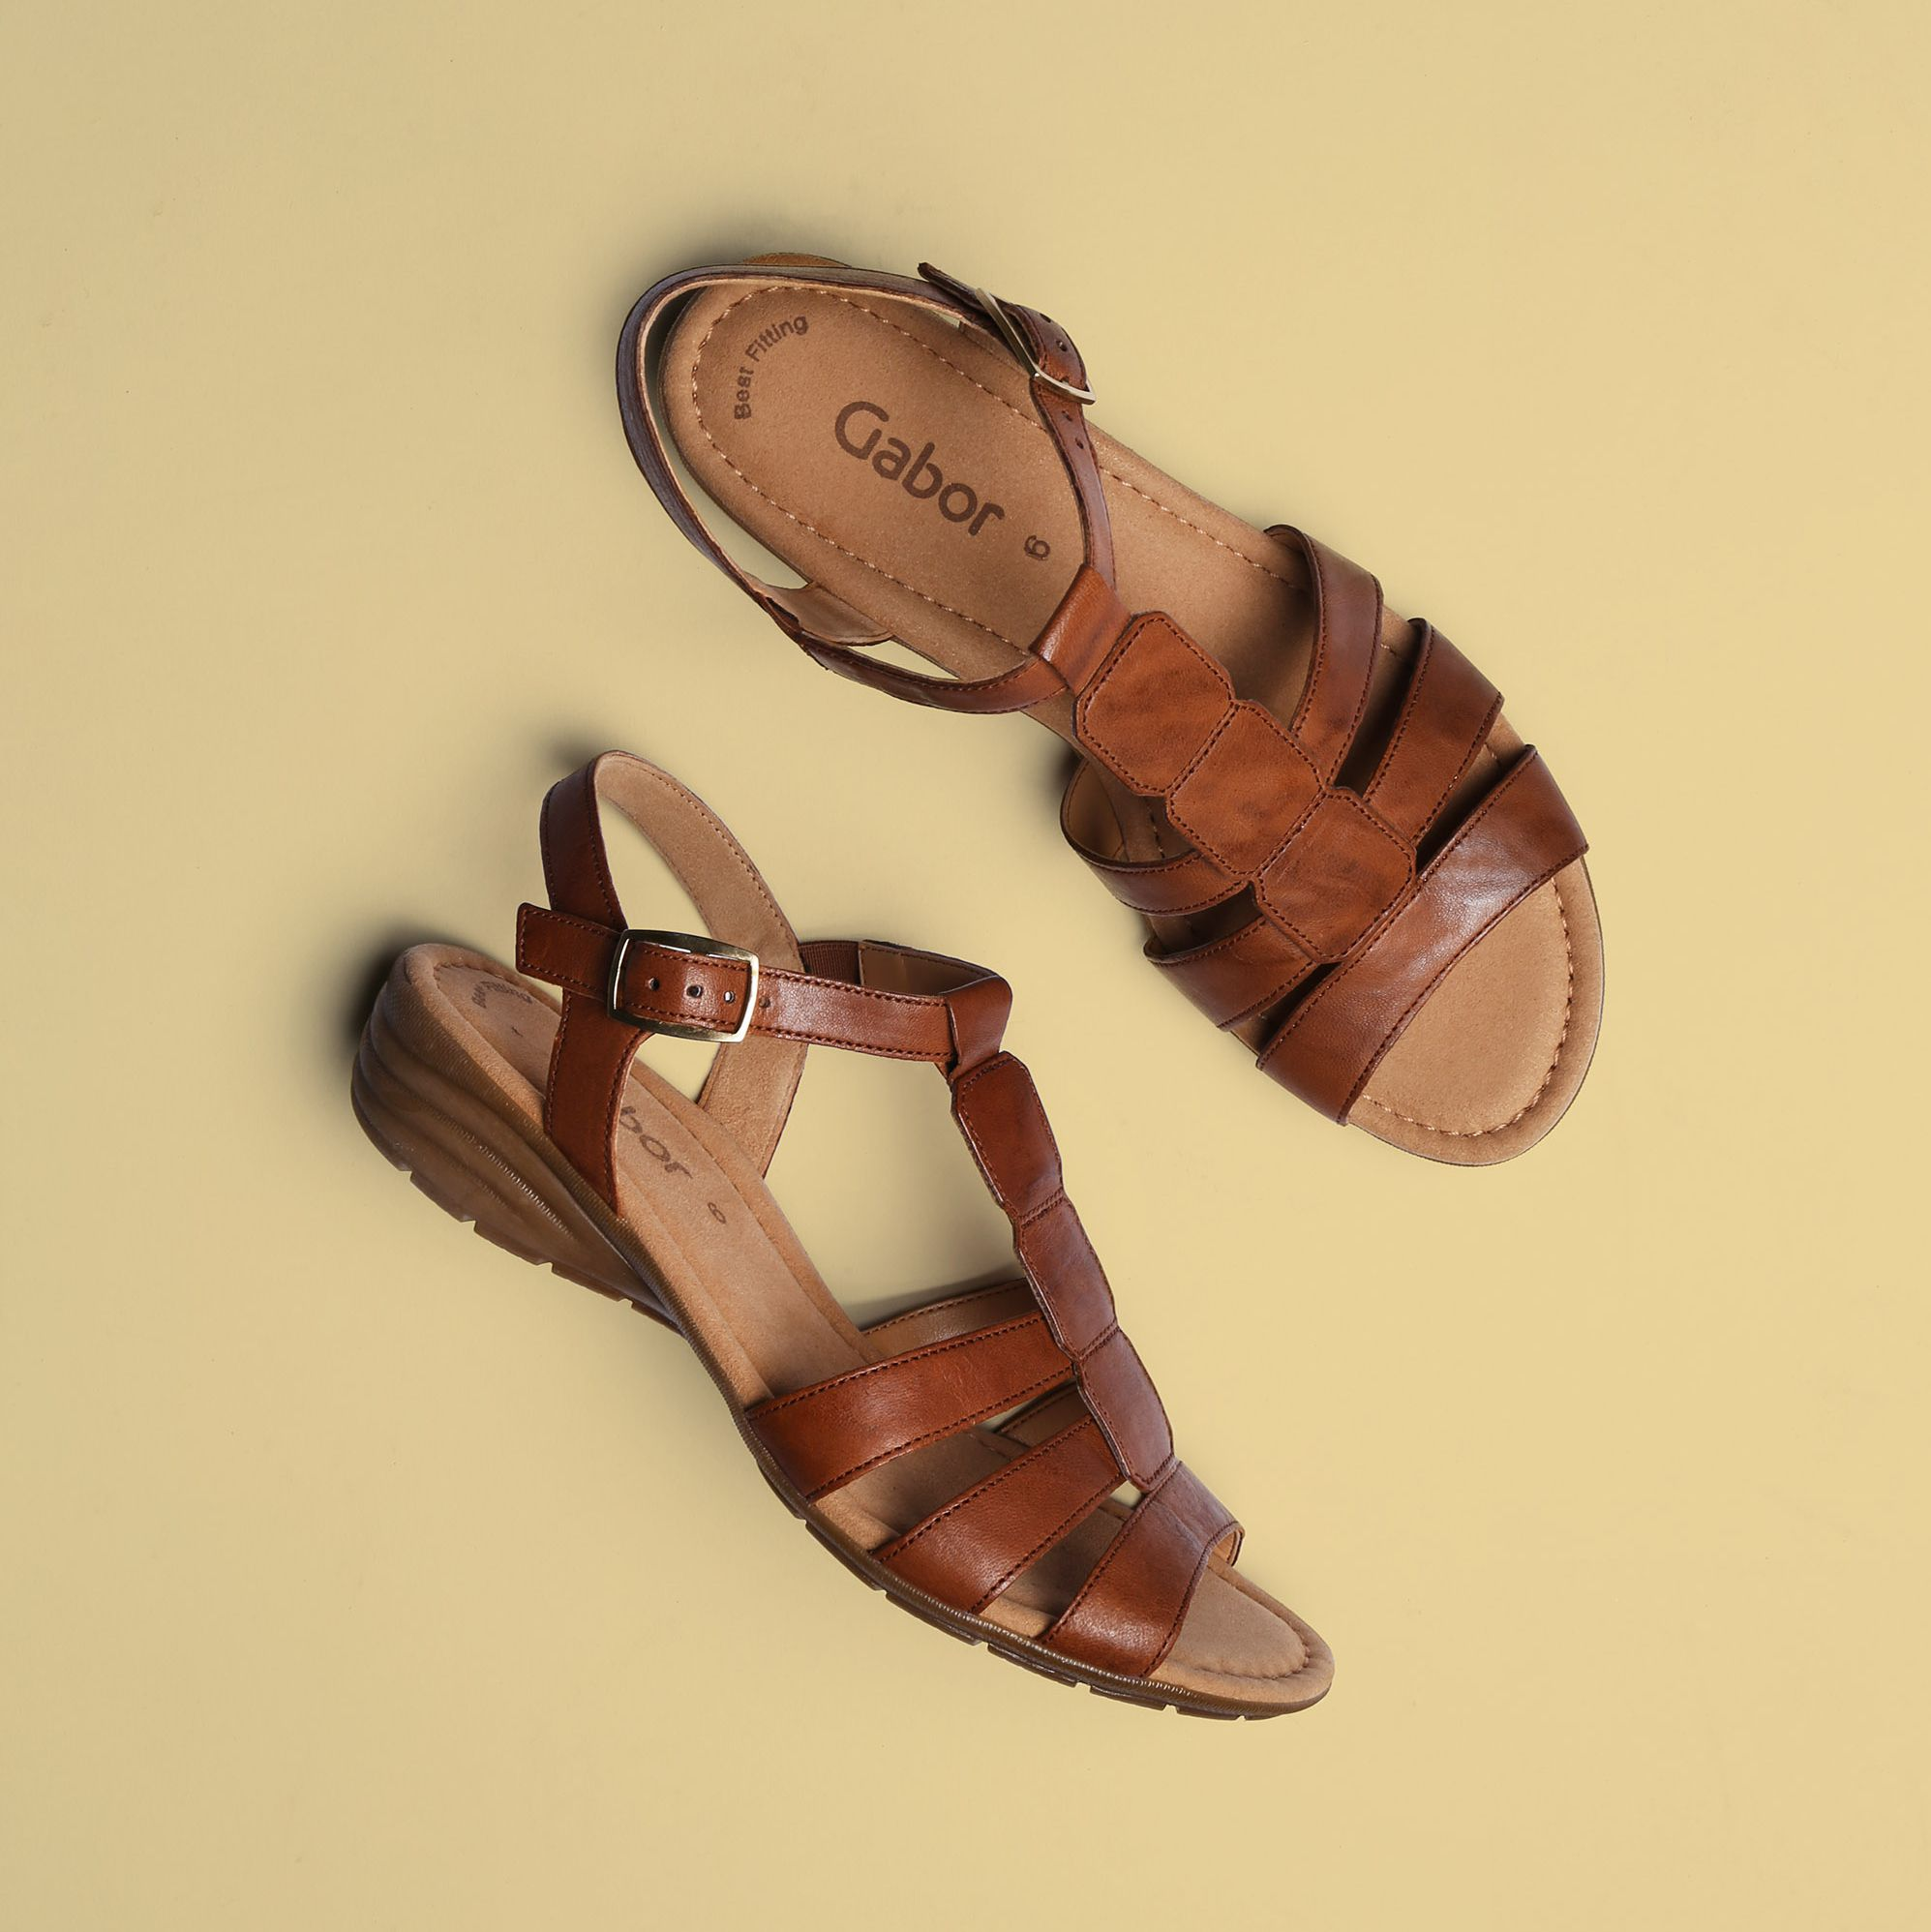 8771de4790dd What better sandals for a sunny day than the aptly named Gabor Solar! 😎☀